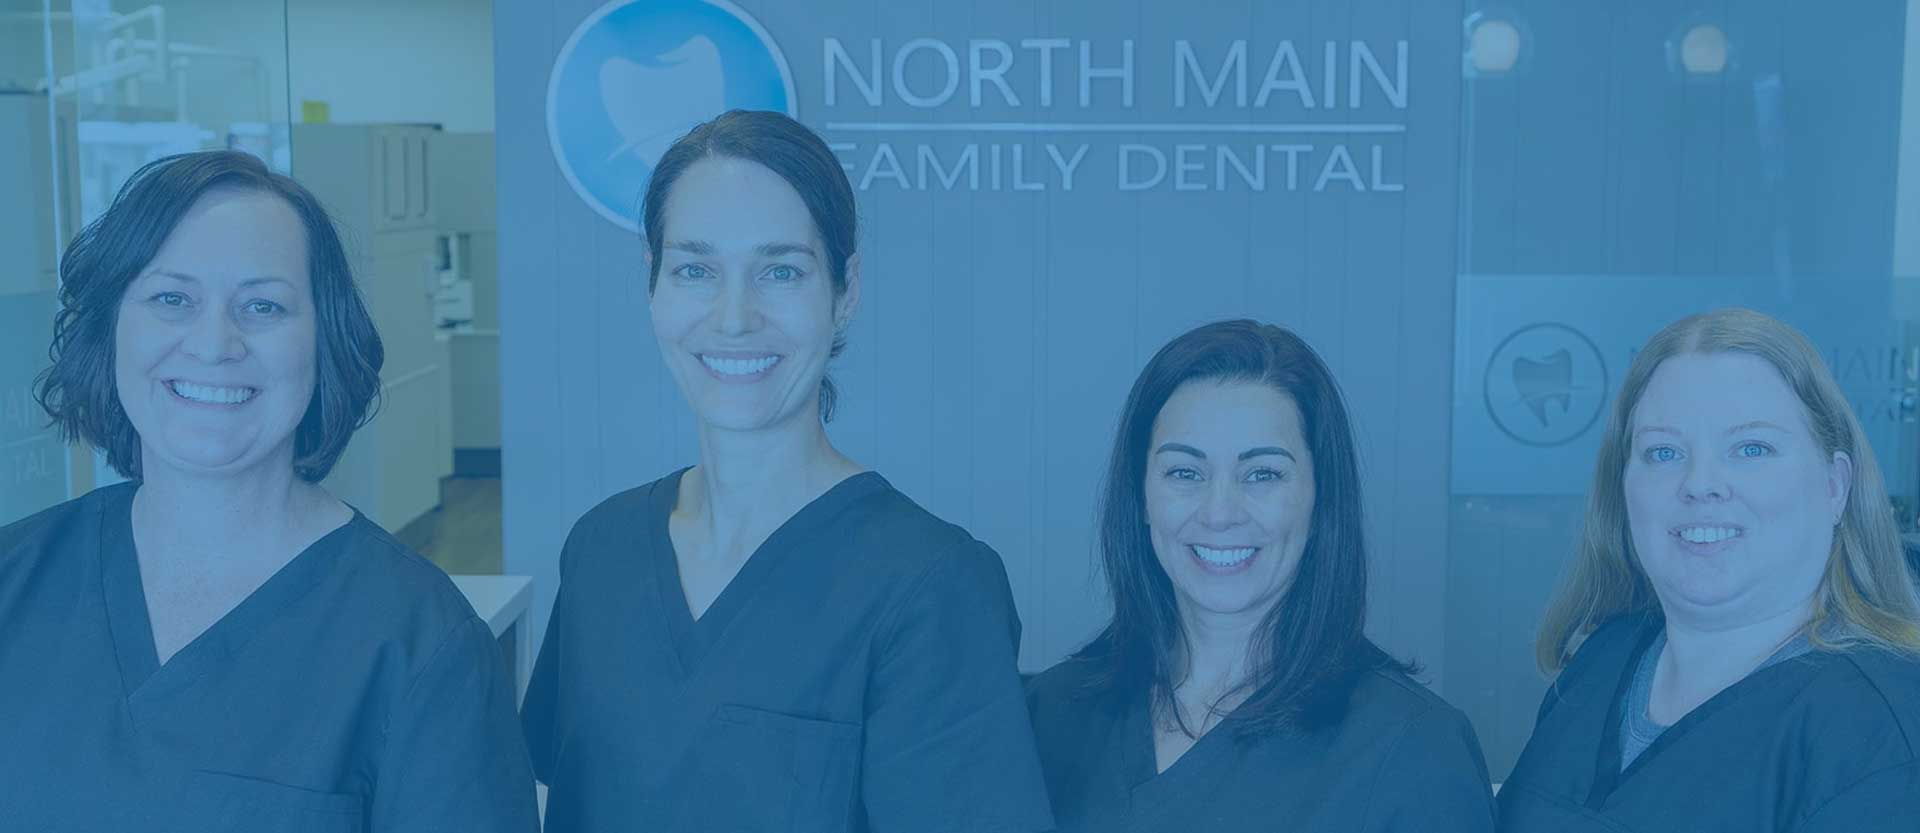 Meet the Friendly Dental Team | North Main Family Dental | Family and General Dentist | Airdrie